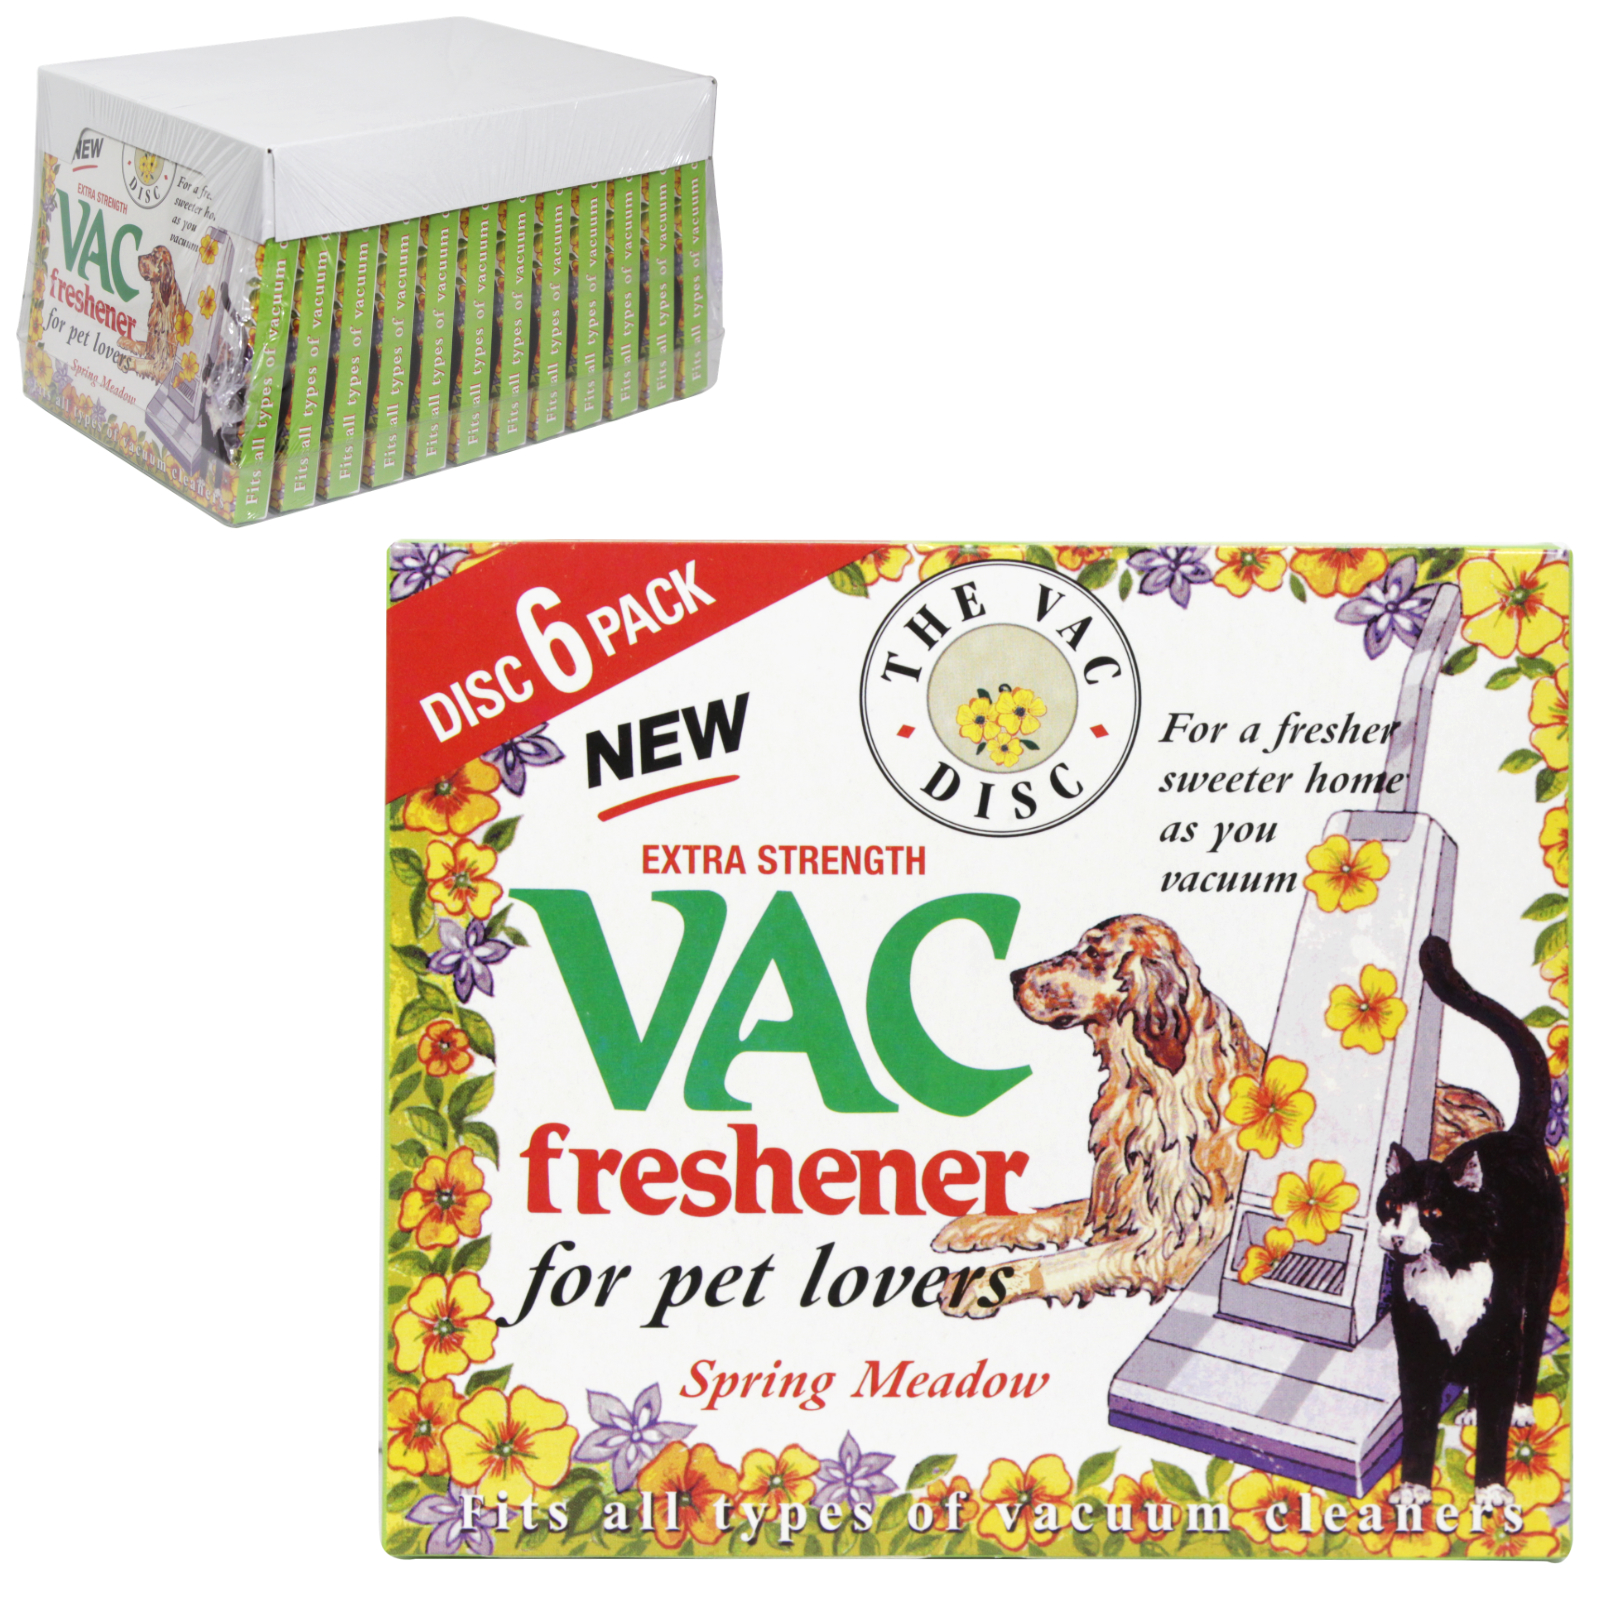 VAC FRESHENER 6PK DISC PET LOVERS X12